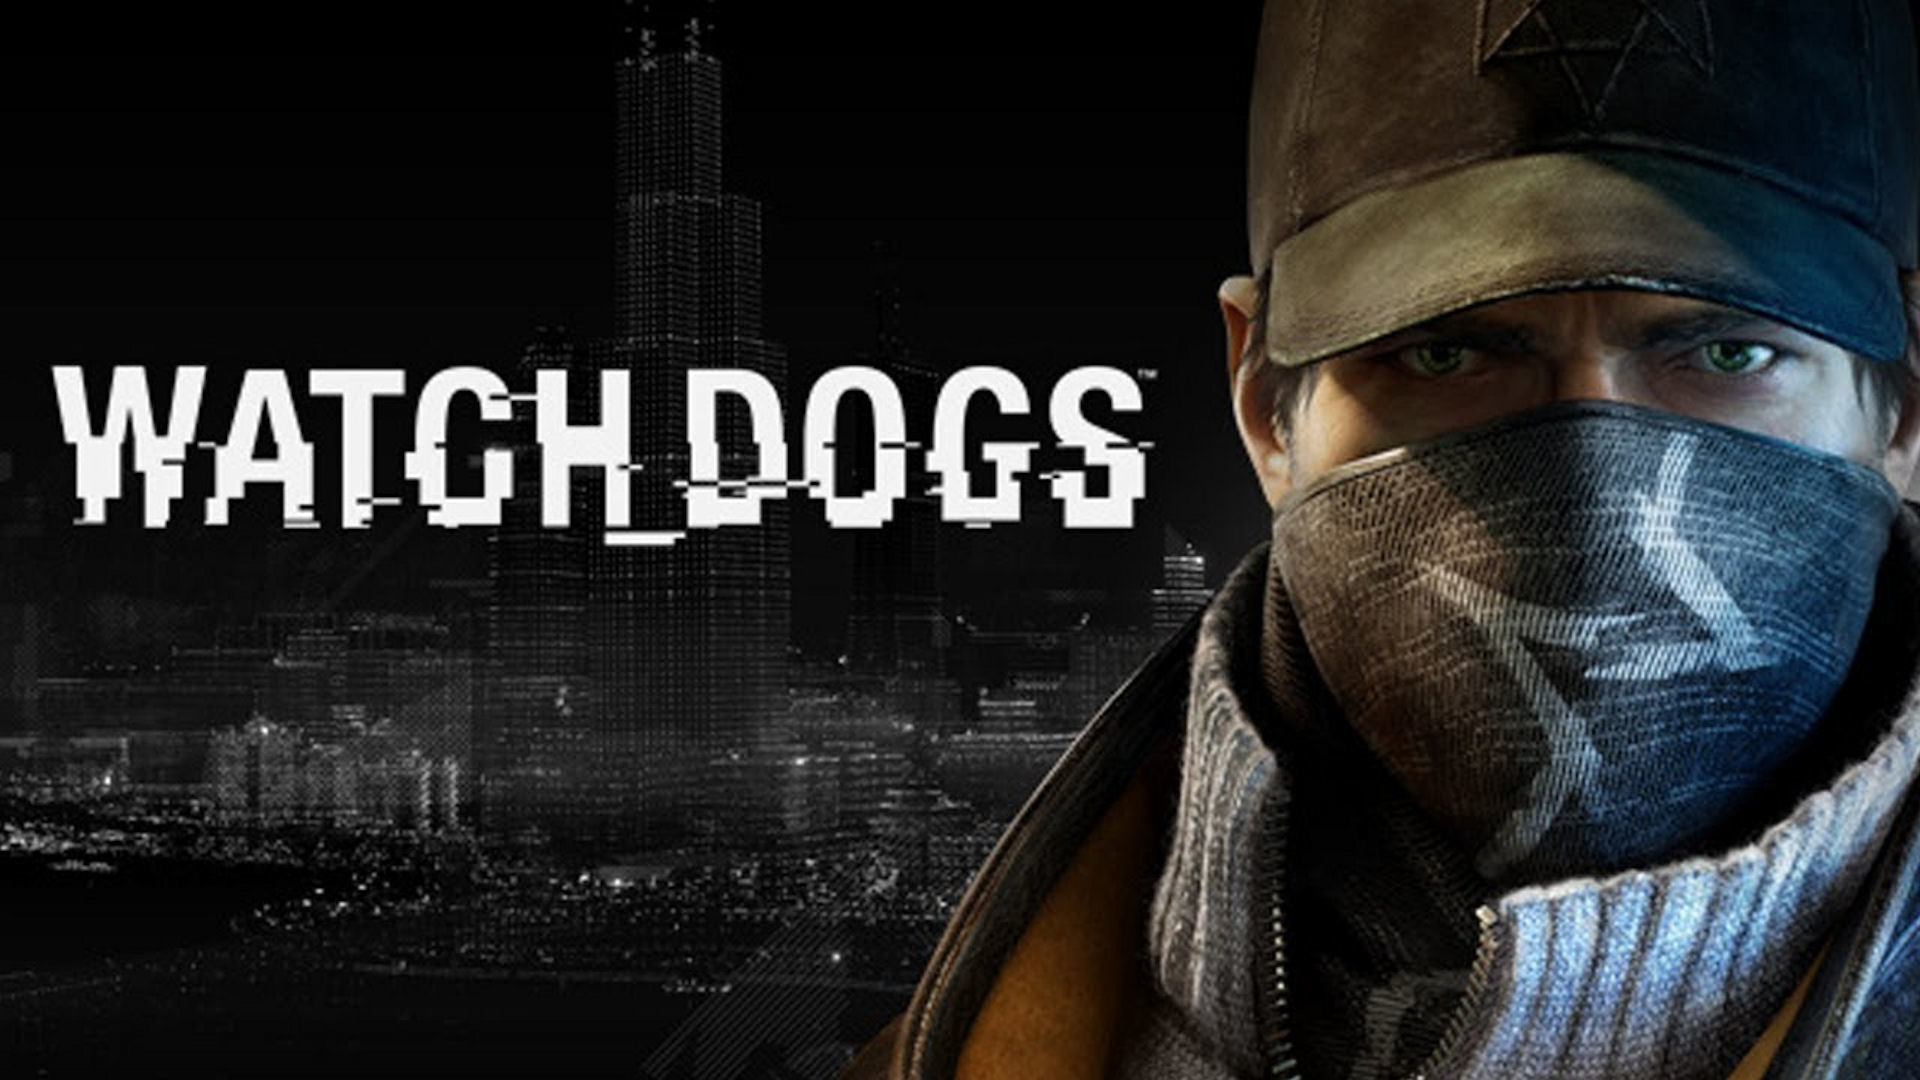 Watch dogs wallpapers 77 images 1920x1080 wallpapers de watch dogs hd 1080p youtube voltagebd Images